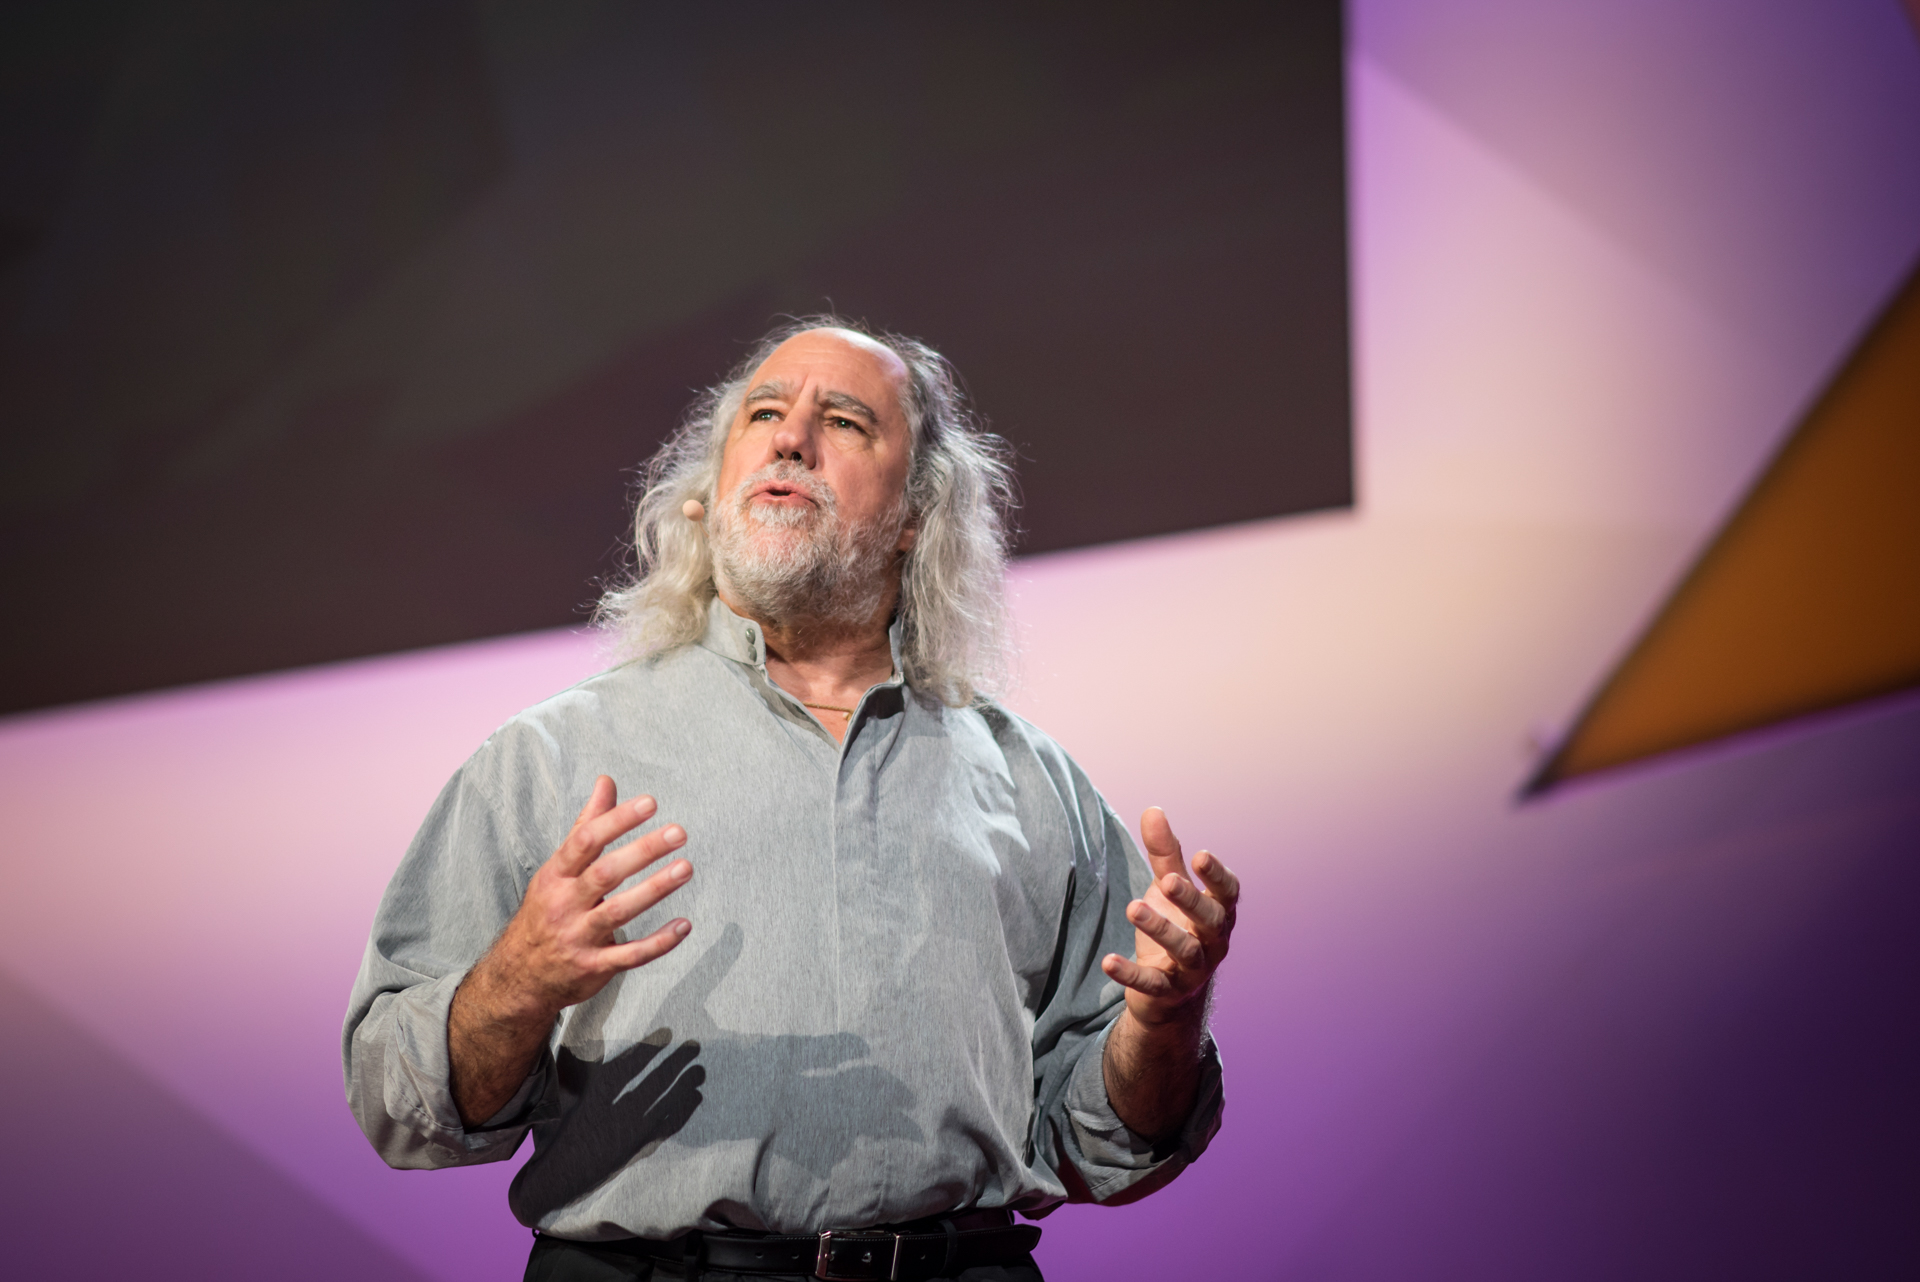 Grady Booch speaks at TED@IBM salon - Spark, November 16, 2016, San Francisco Jazz, San Francisco, California. Photo: Russell Edwards/TED